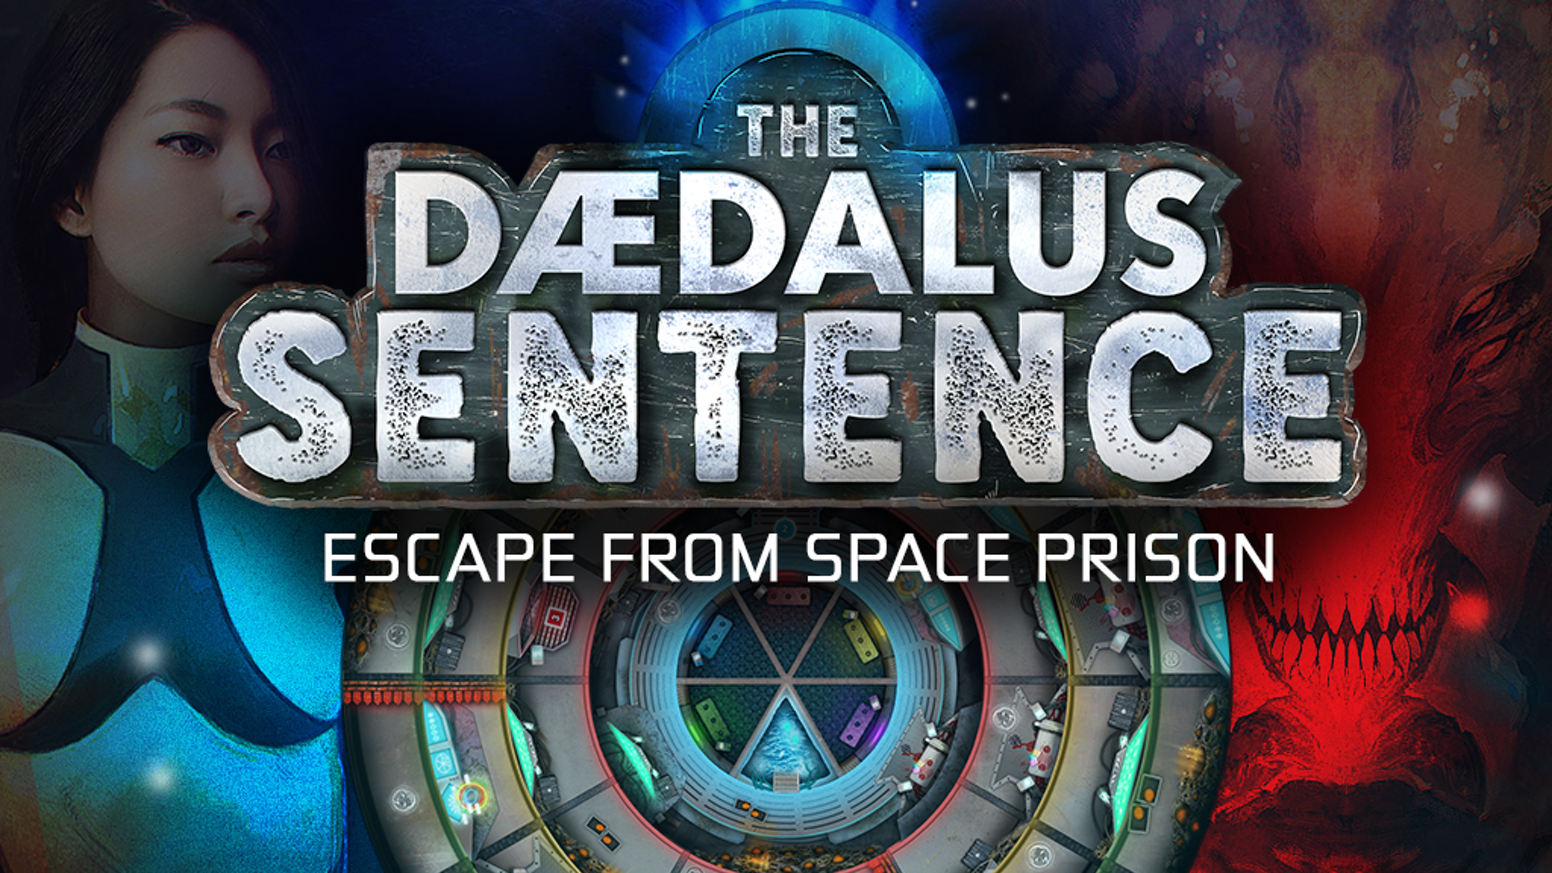 The Daedalus Sentence is a cooperative escape game for 1 to 4 players in a dangerous and ever-changing prison with 7 difficulty levels.